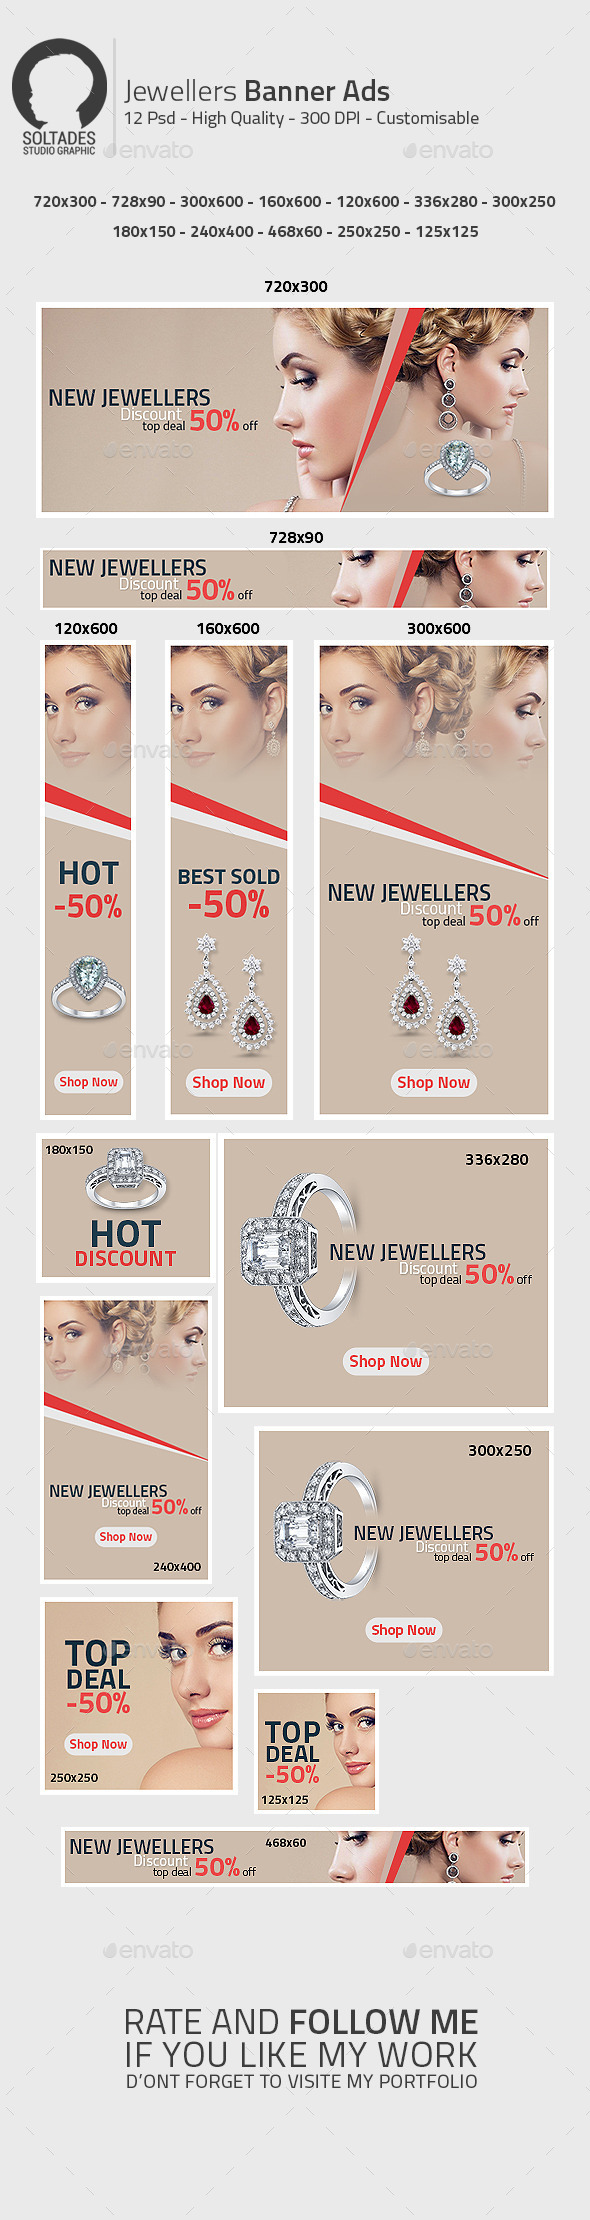 GraphicRiver Jewellers Banner Ads 10981889